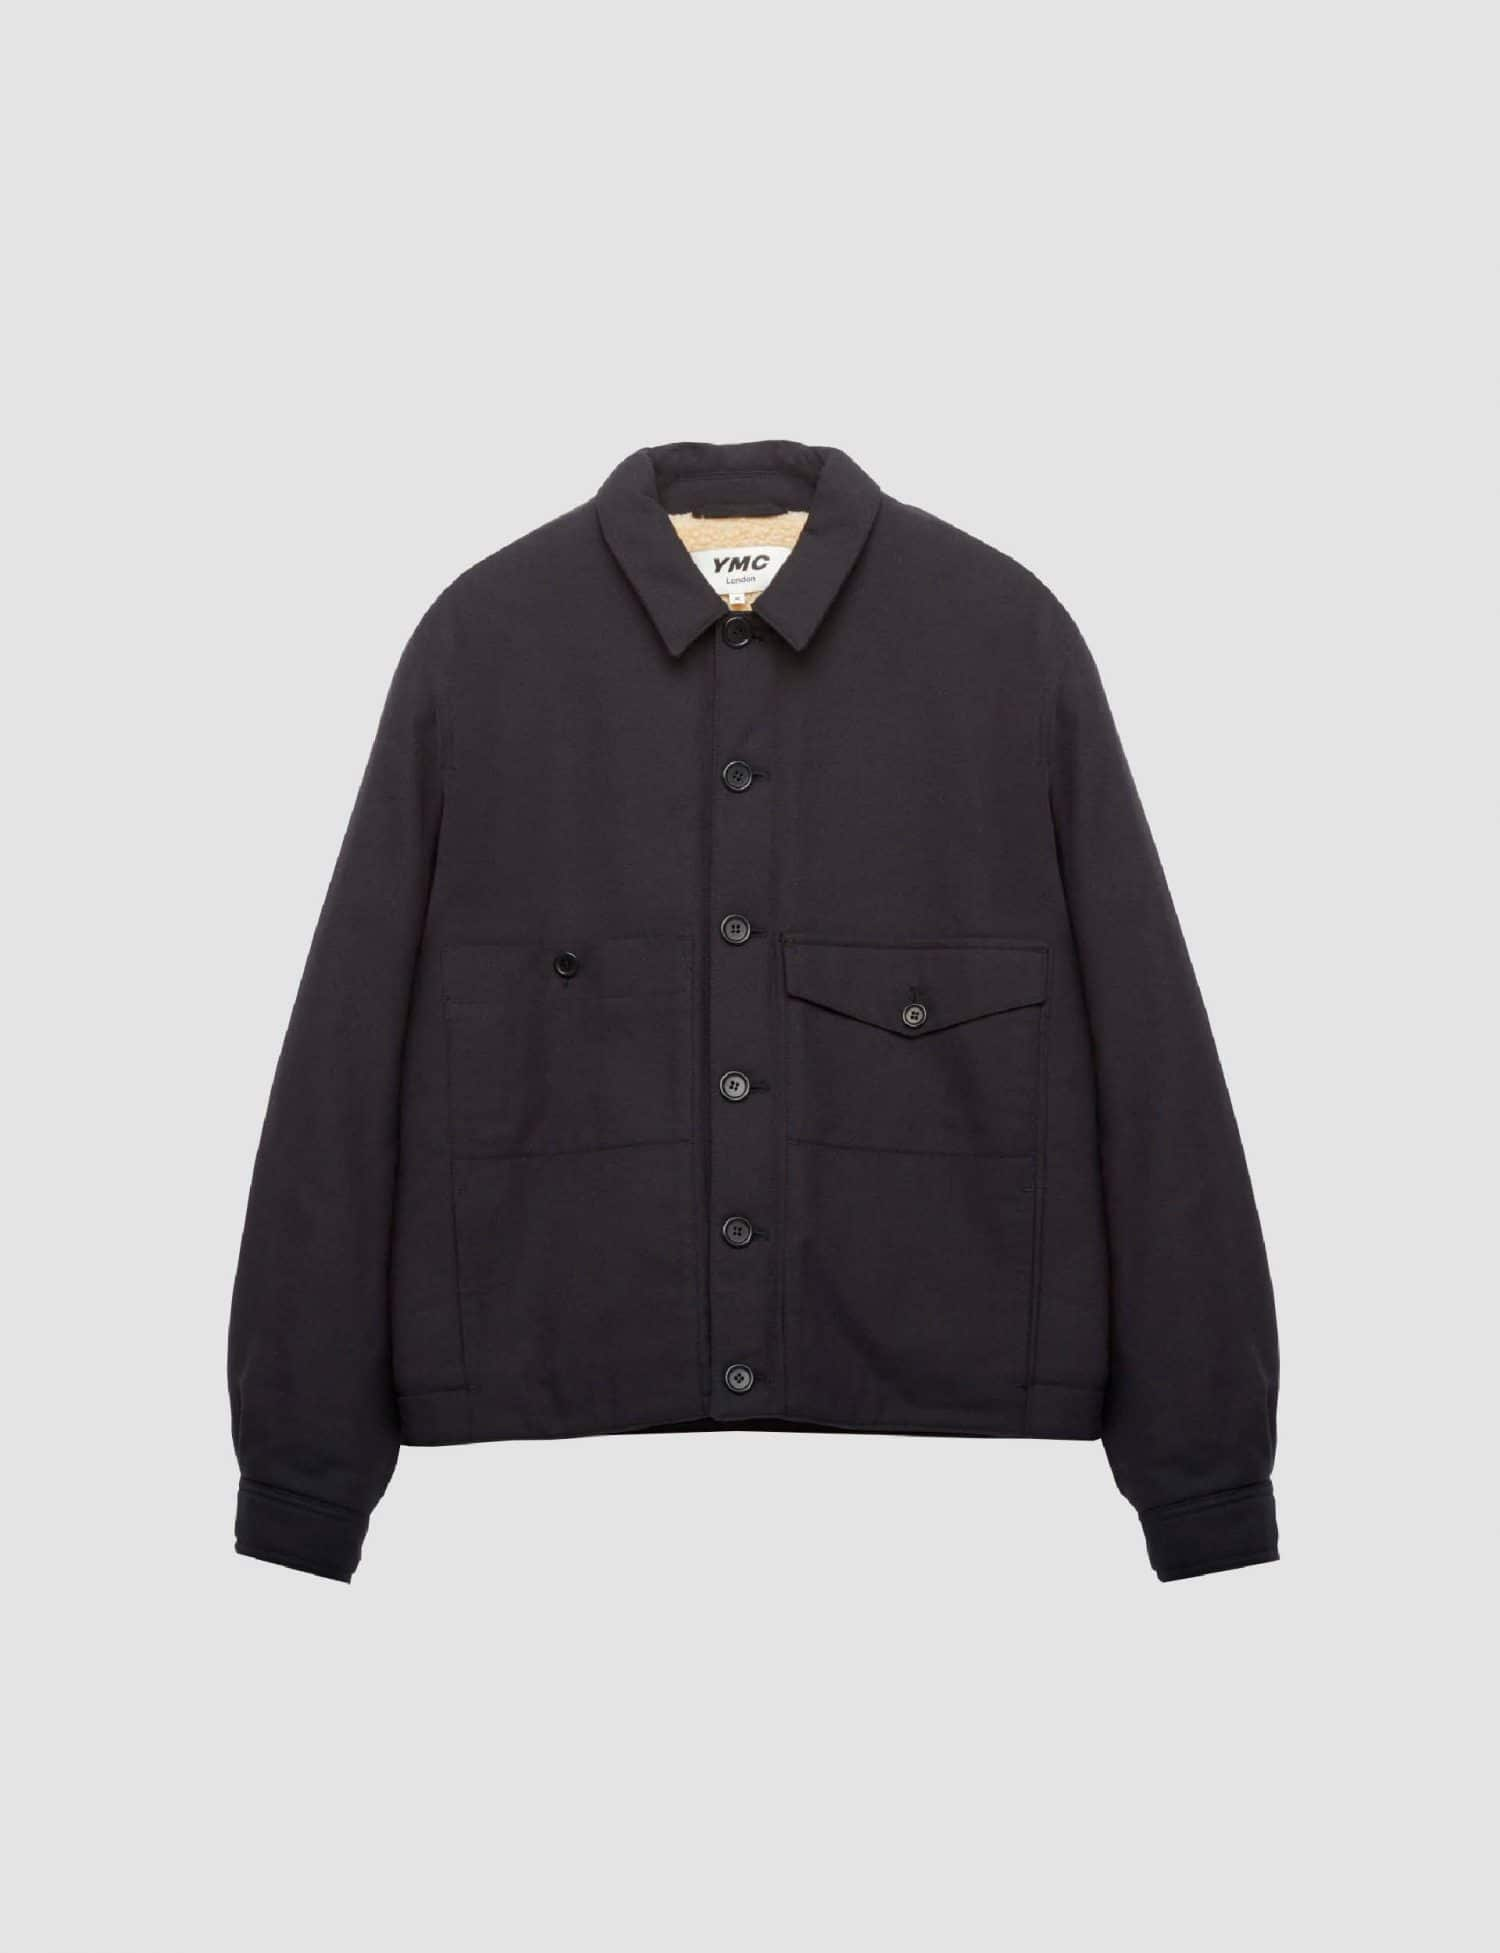 YMC - Pinkley Jacket - Navy